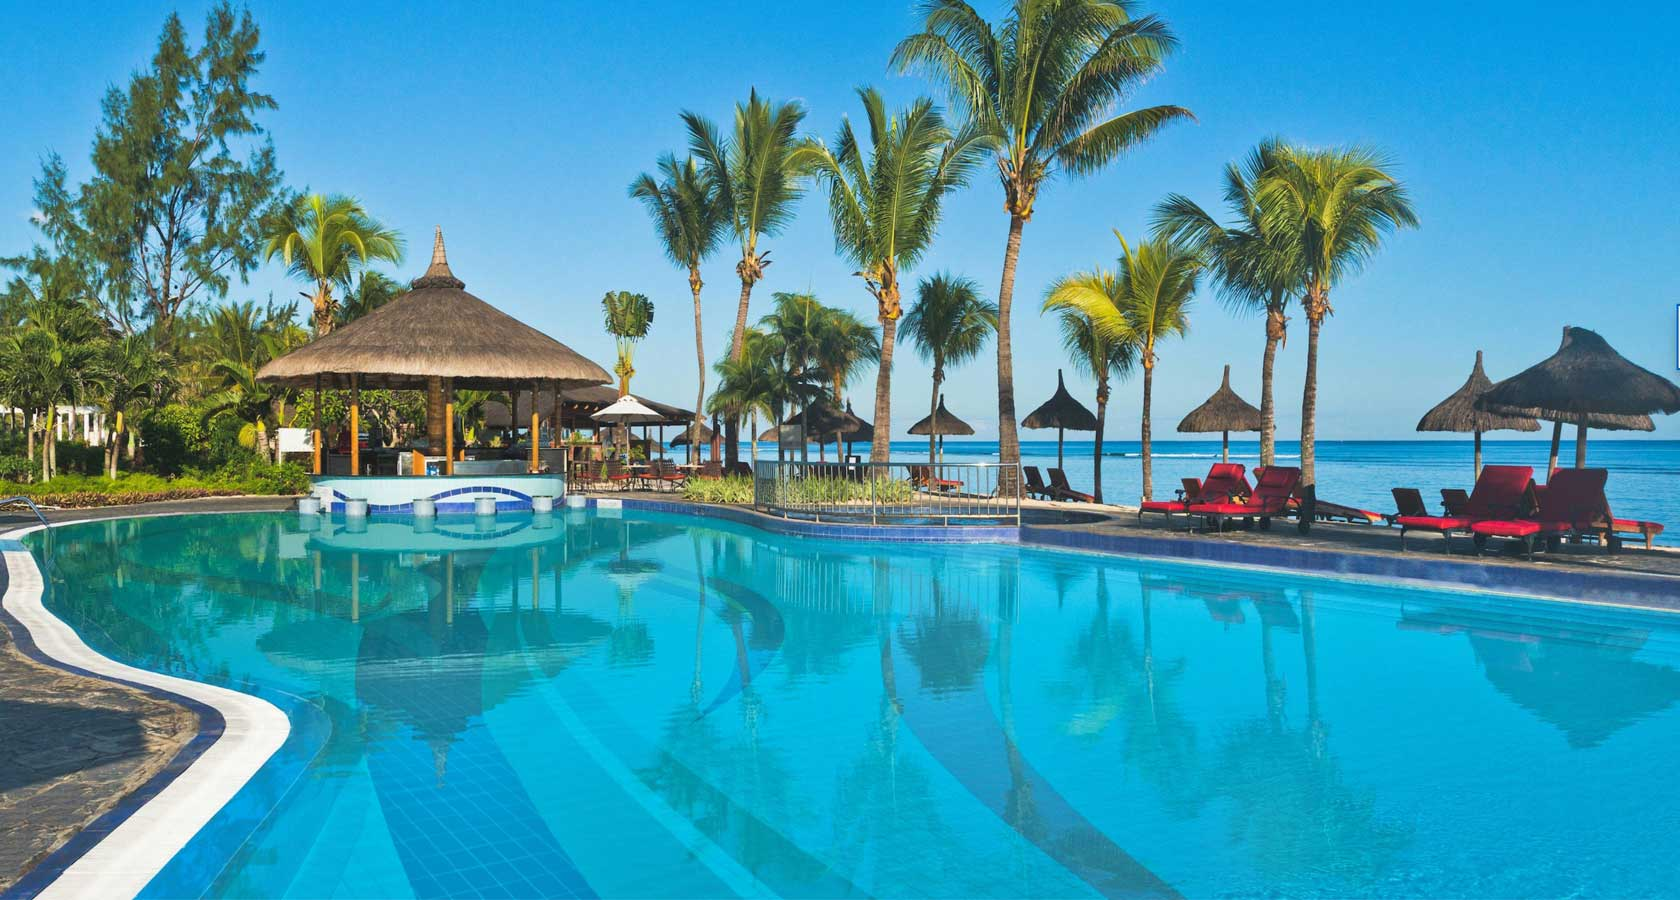 BEST MAURITIUS HONEYMOON PACKAGES LE MERIDIEN ILE MAURICE